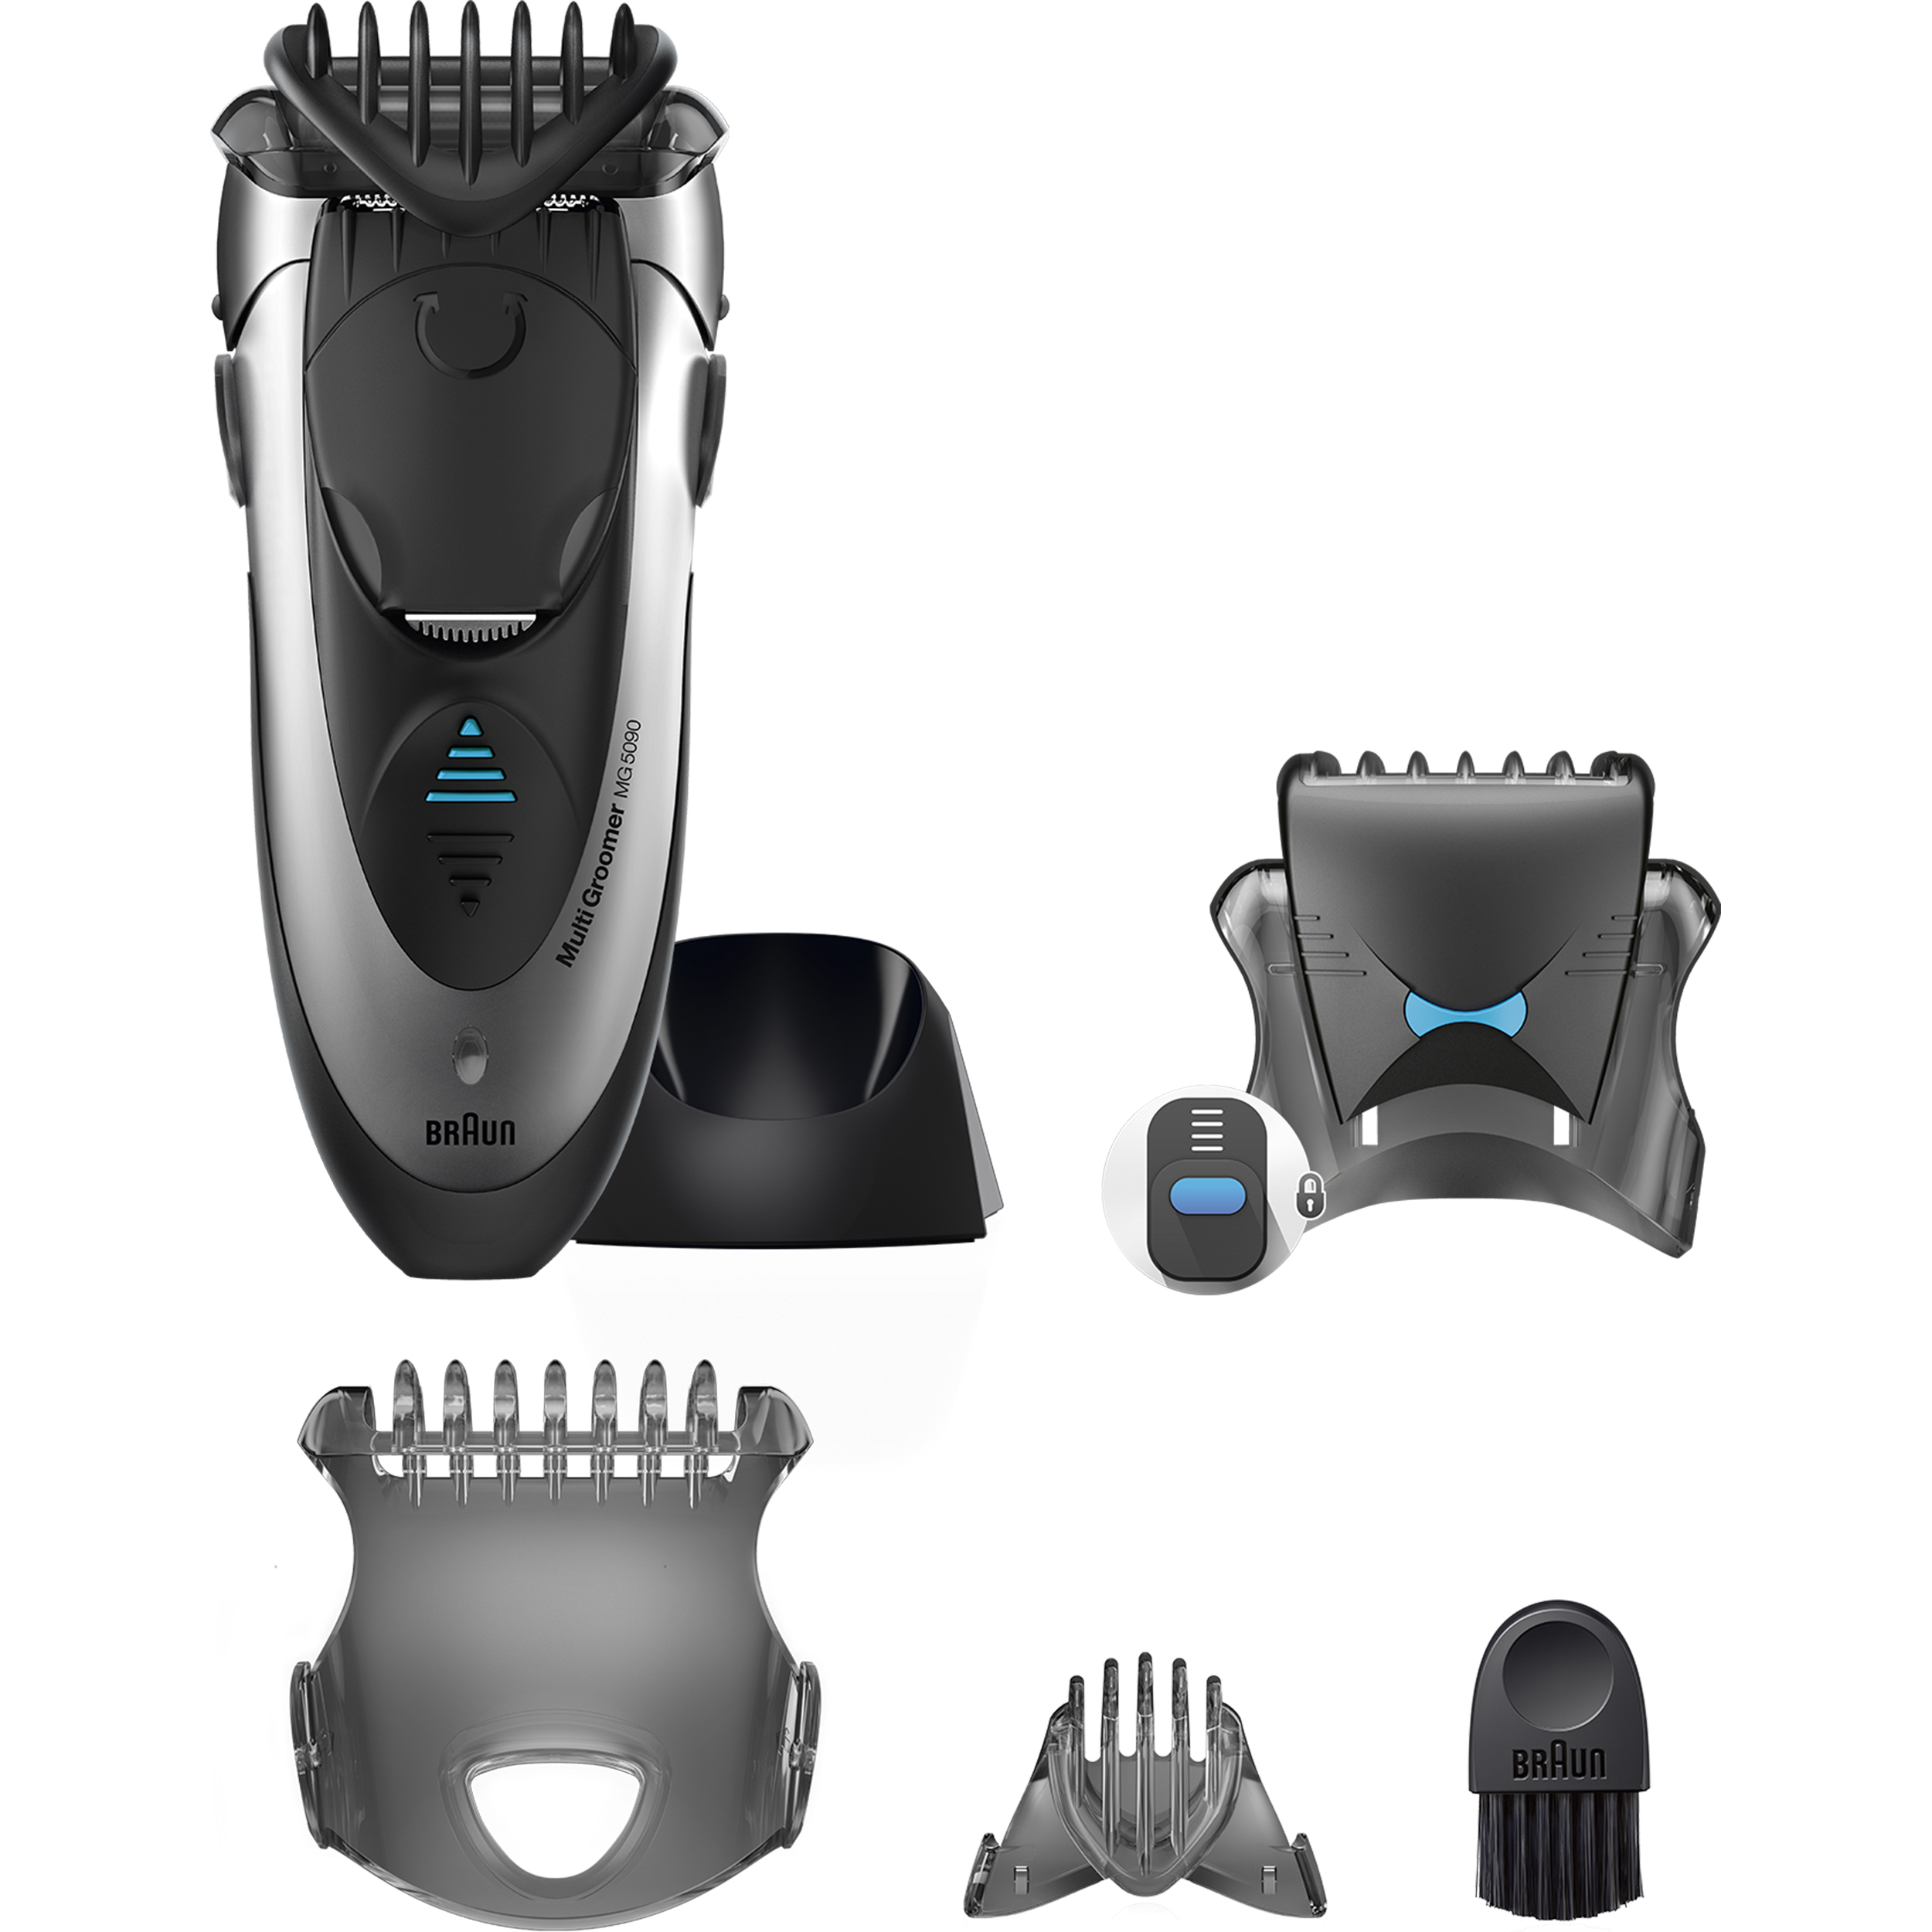 Braun Wet & Dry Multi Groomer MG5090 – Shave, trim & style. All in one ($5 Rebate Available)